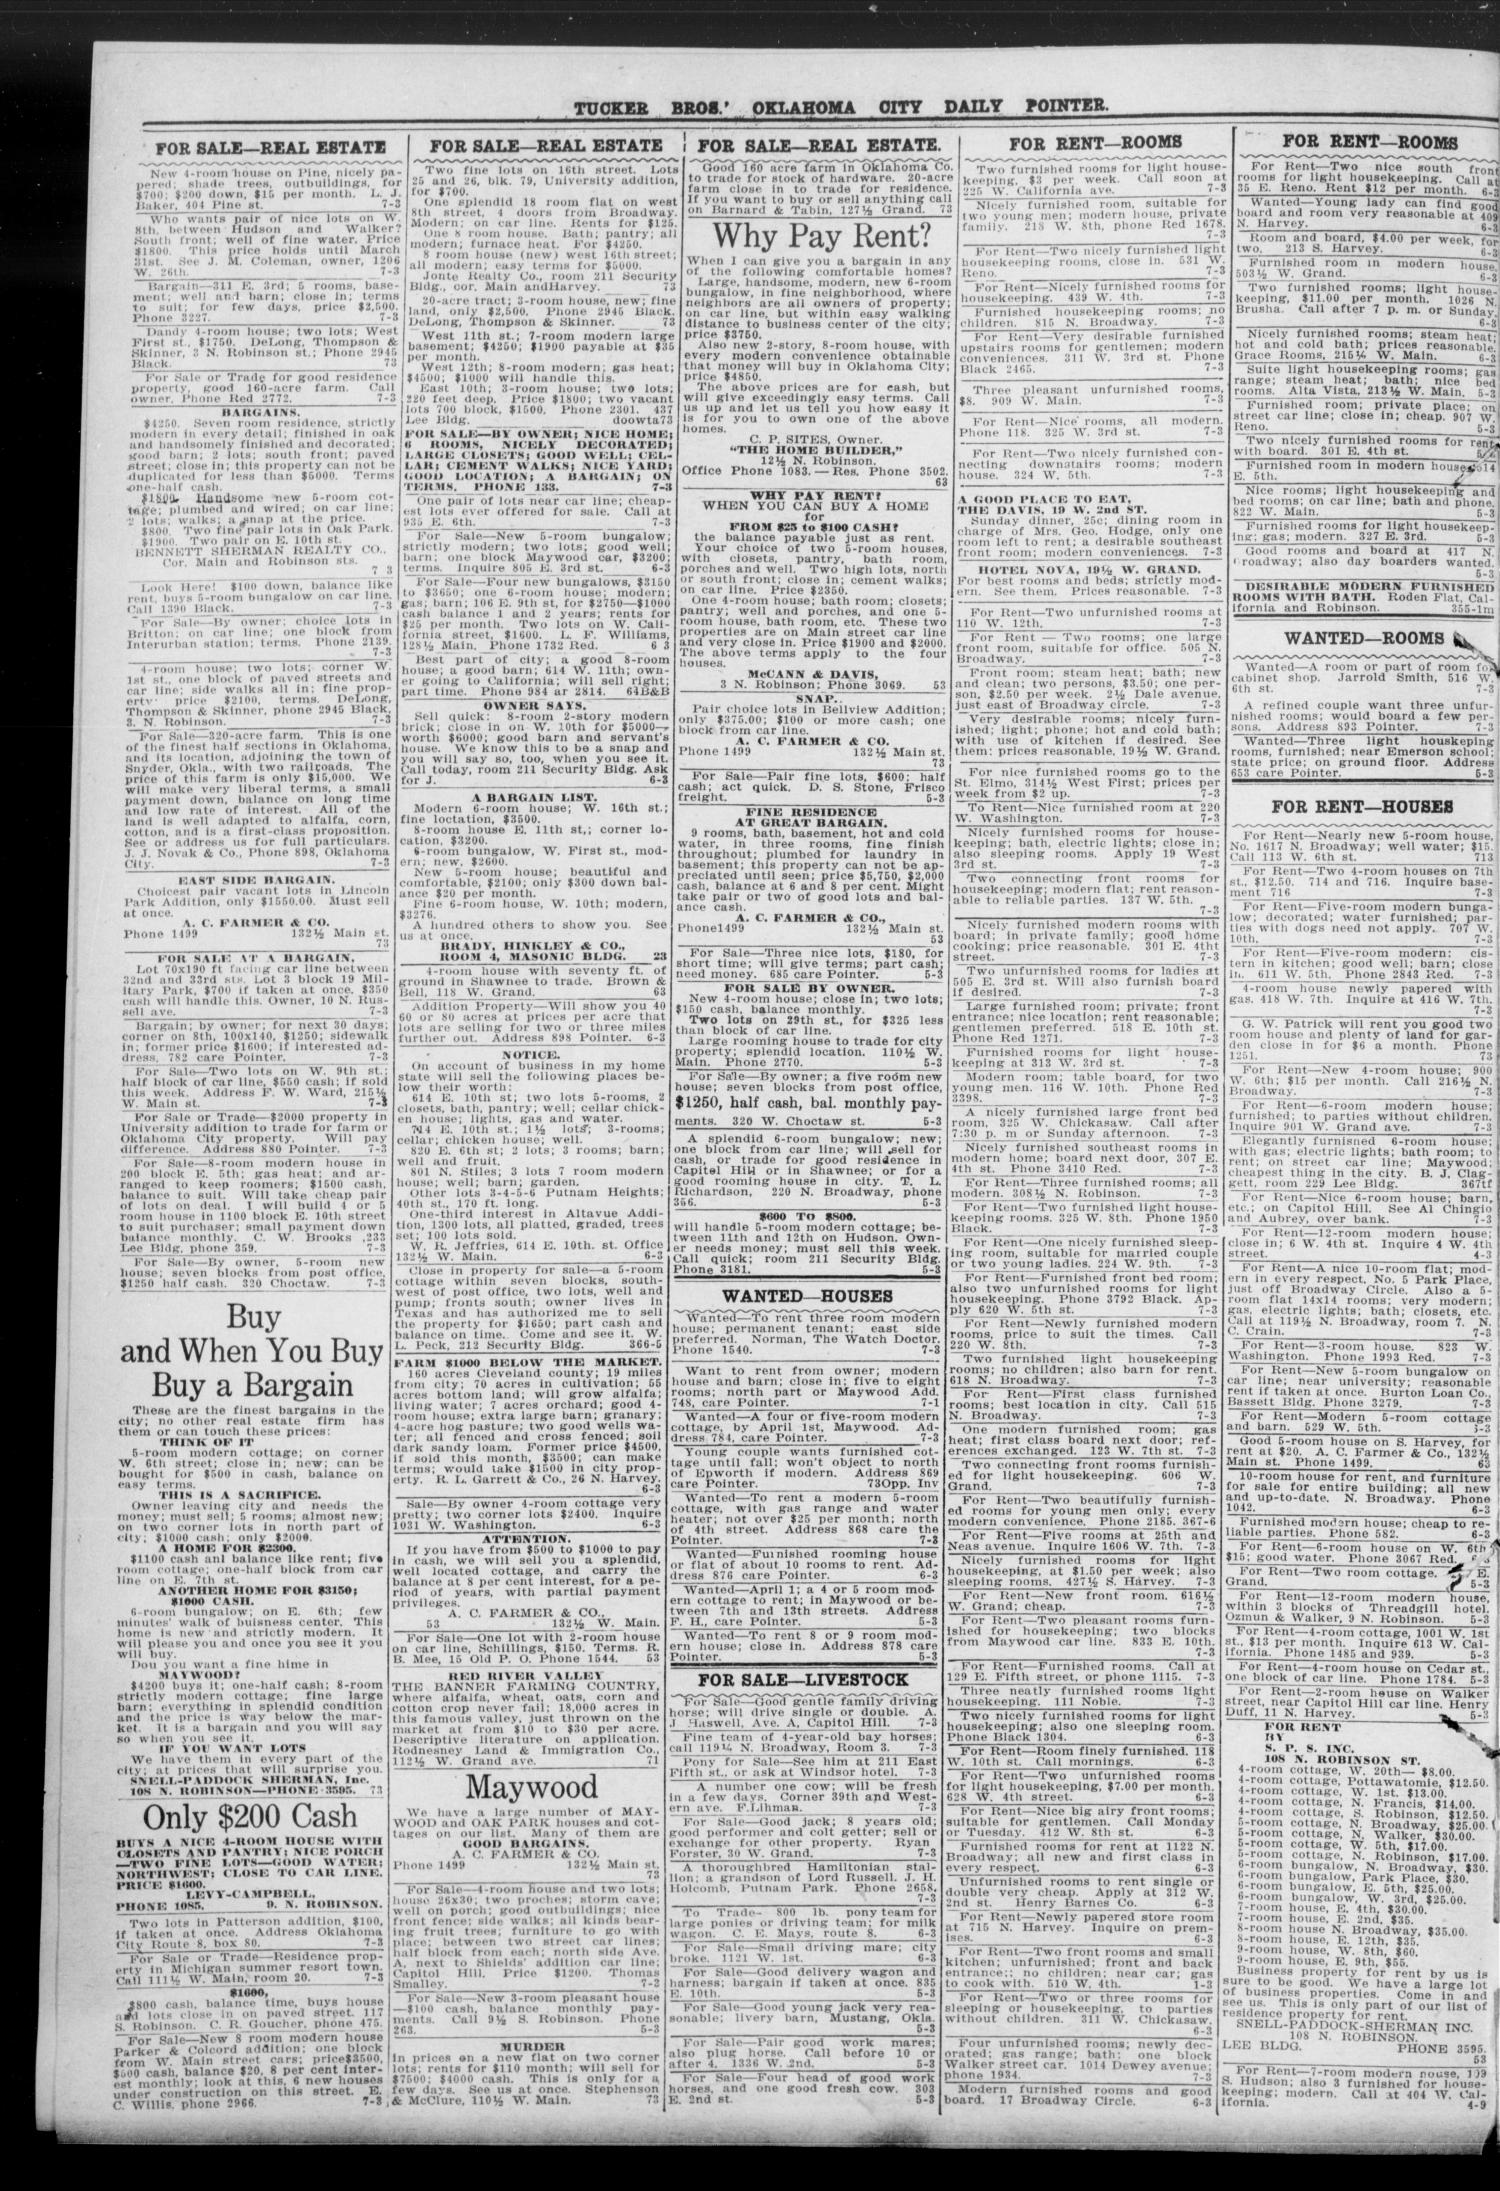 Oklahoma City Daily Pointer (Oklahoma City, Okla.), Vol. 3, No. 367, Ed. 1 Sunday, March 22, 1908                                                                                                      [Sequence #]: 4 of 4